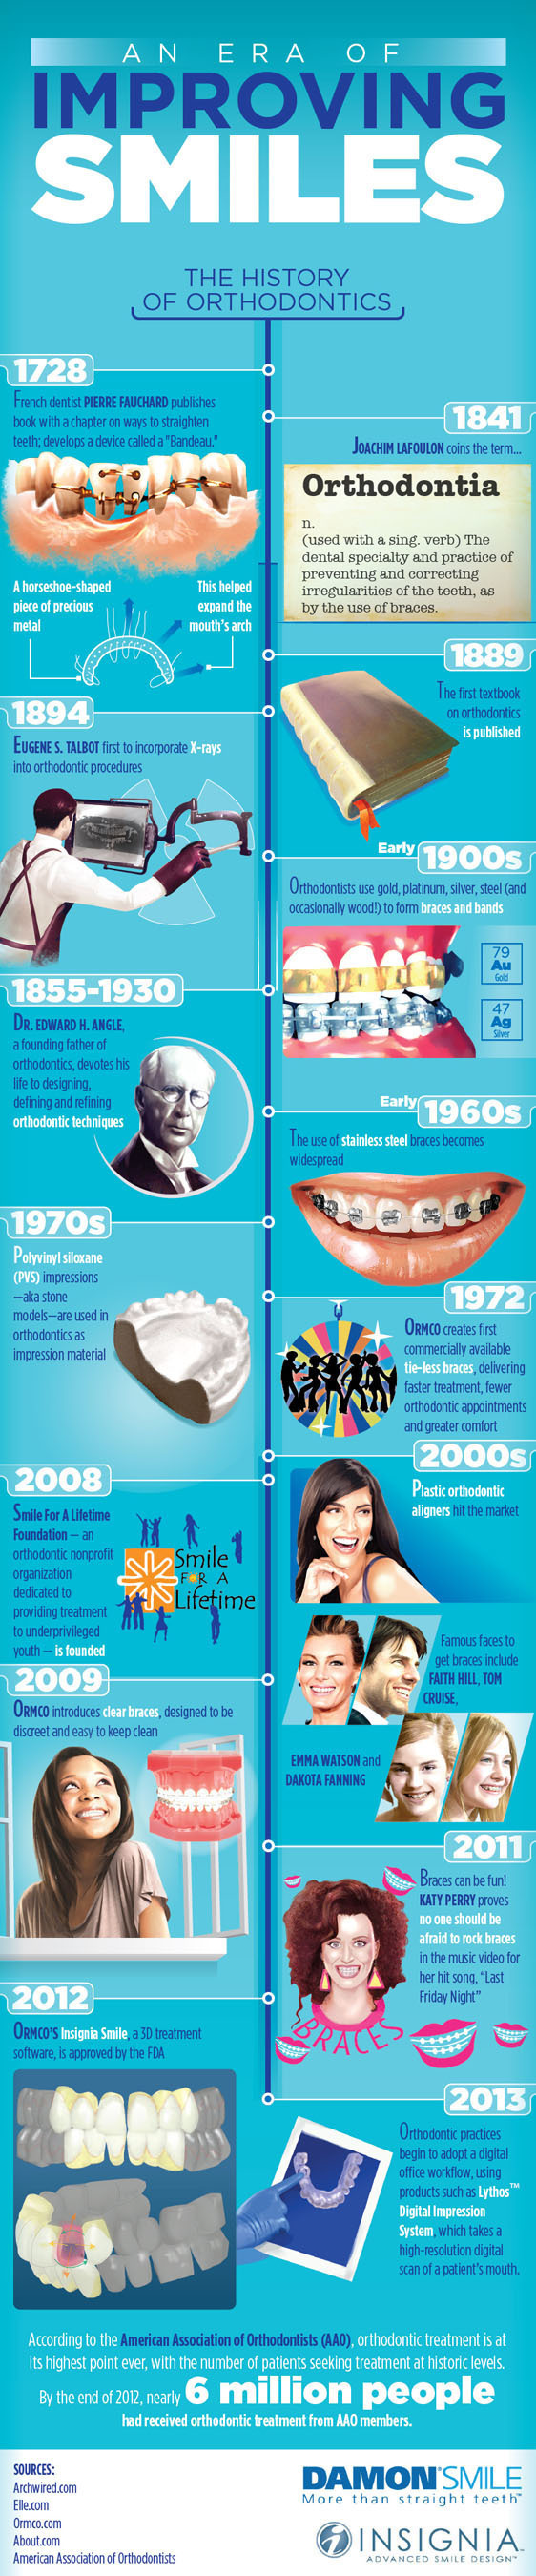 MAKERS OF DAMON® SMILE AND INSIGNIA(TM) RELEASE INFOGRAPHIC ILLUSTRATING THE HISTORY OF ORTHODONTICS IN ...